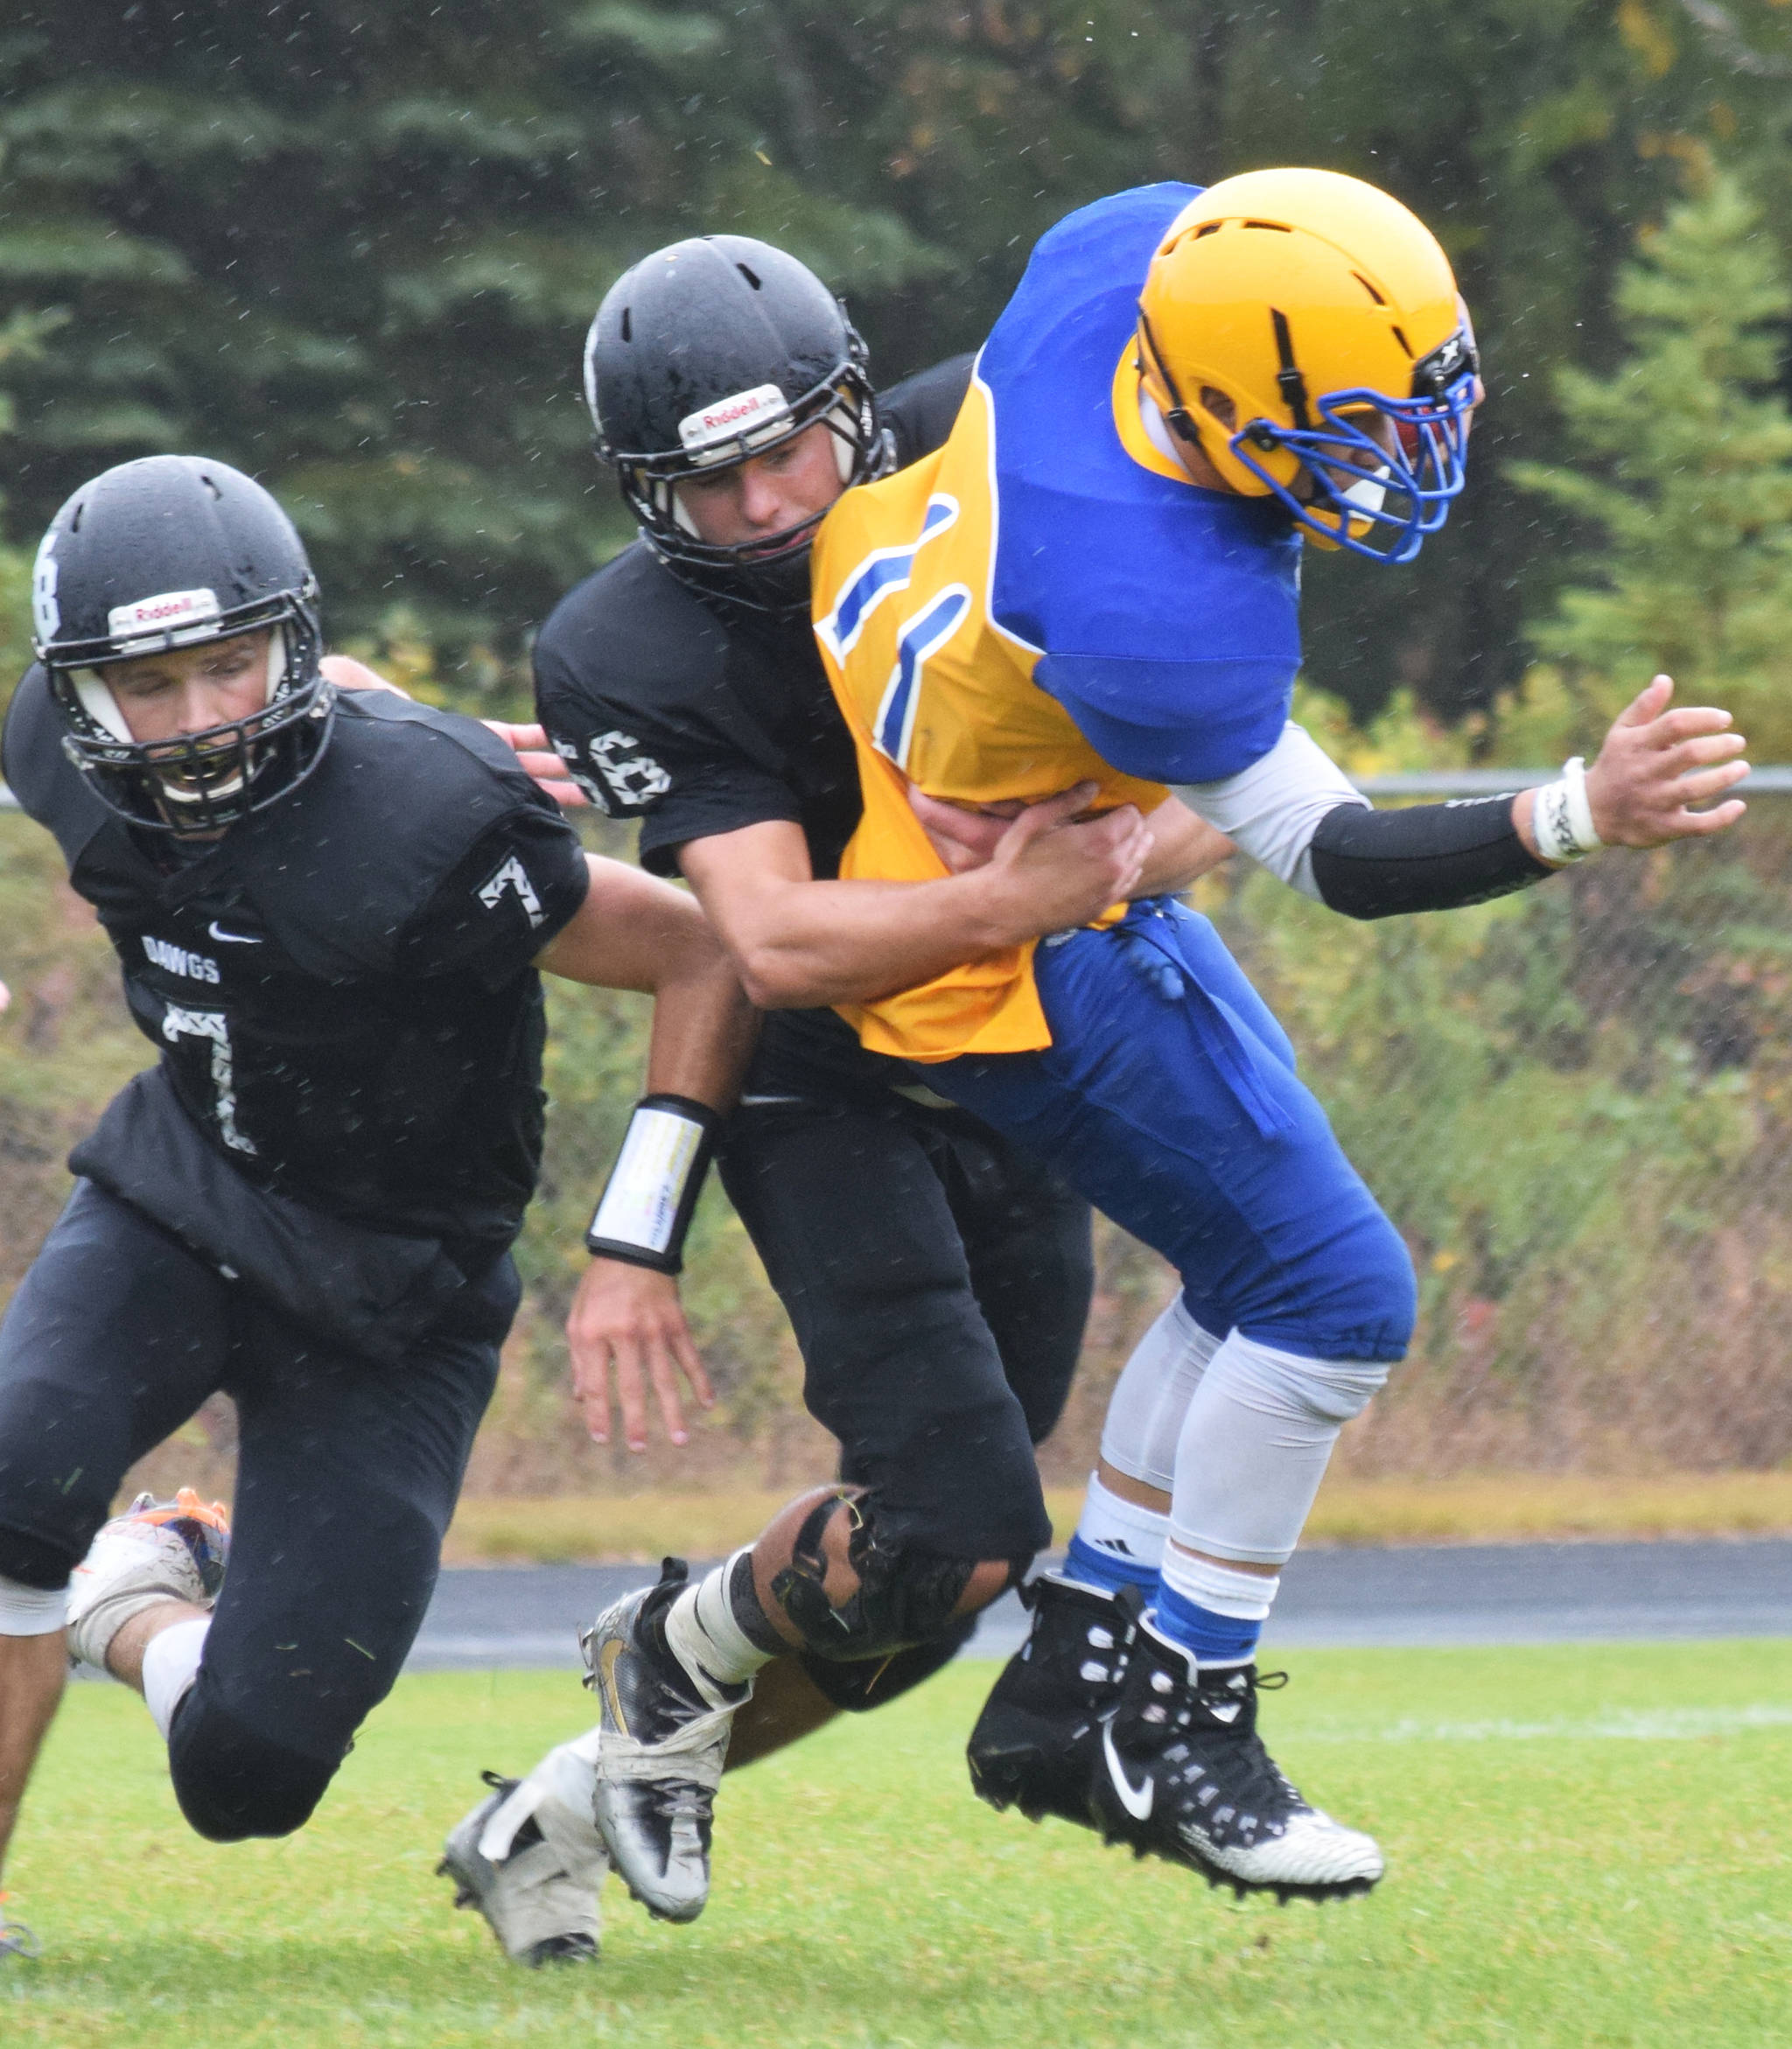 Nikiski's Caileb Payne (left) wraps up Barrow running back Ervin Feleti for a tackle Saturday, Sept. 7, 2019, in Nikiski, Alaska. (Photo by Joey Klecka/Peninsula Clarion)